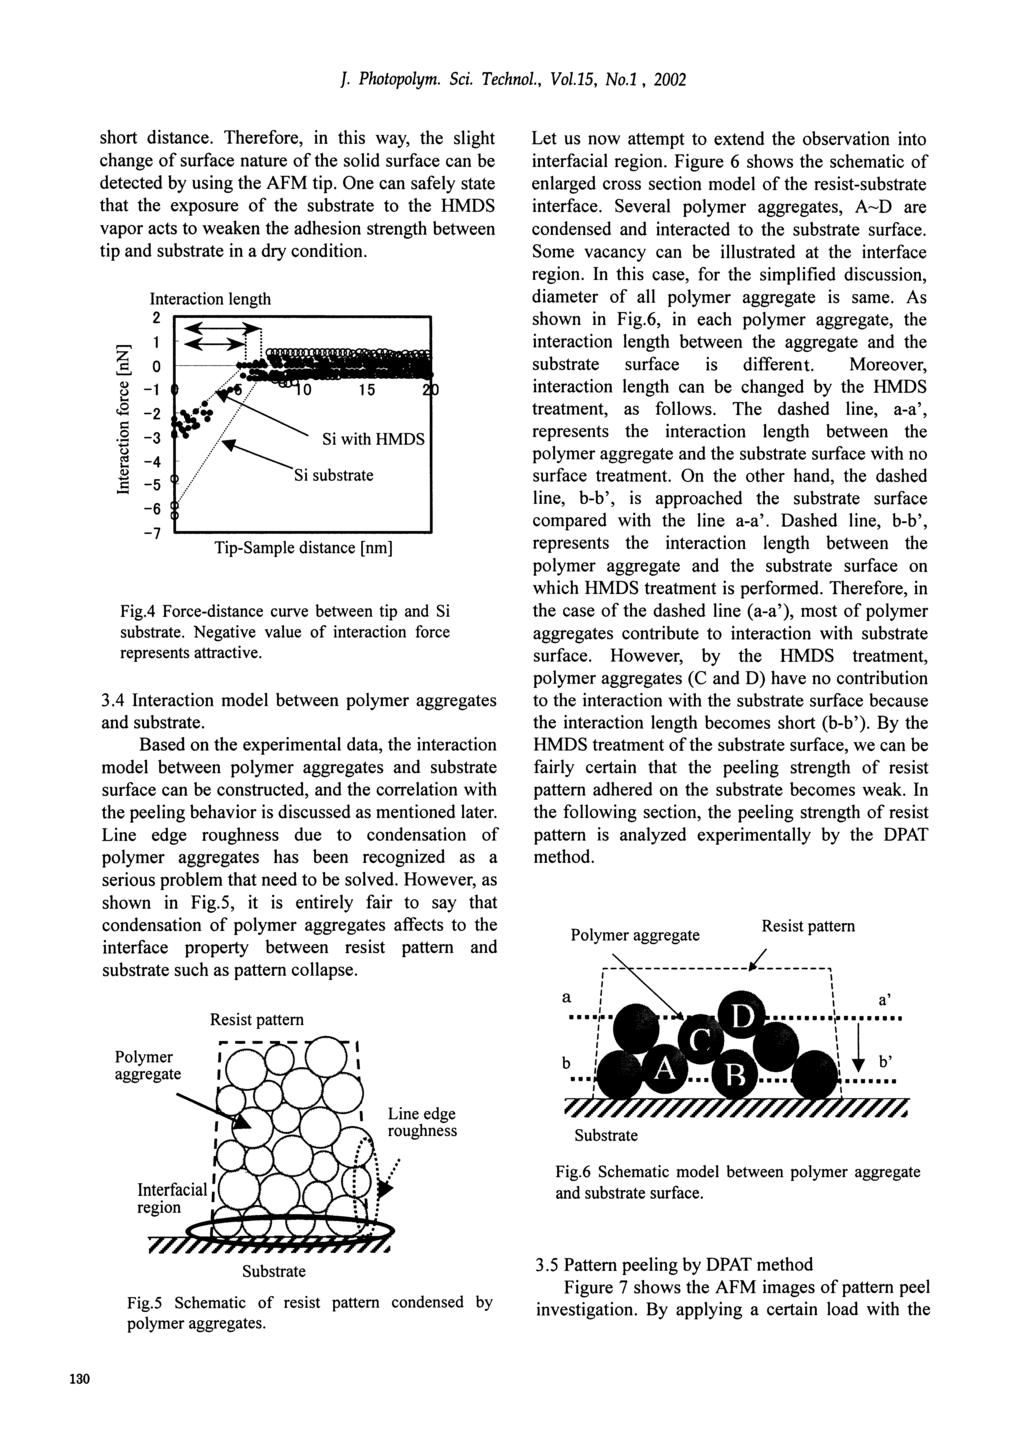 J. Photopolym, Sci, Technol., Vol.15, No.1, 2002 short distance. Therefore, in this way, the slight change of surface nature of the solid surface can be detected by using the AFM tip.